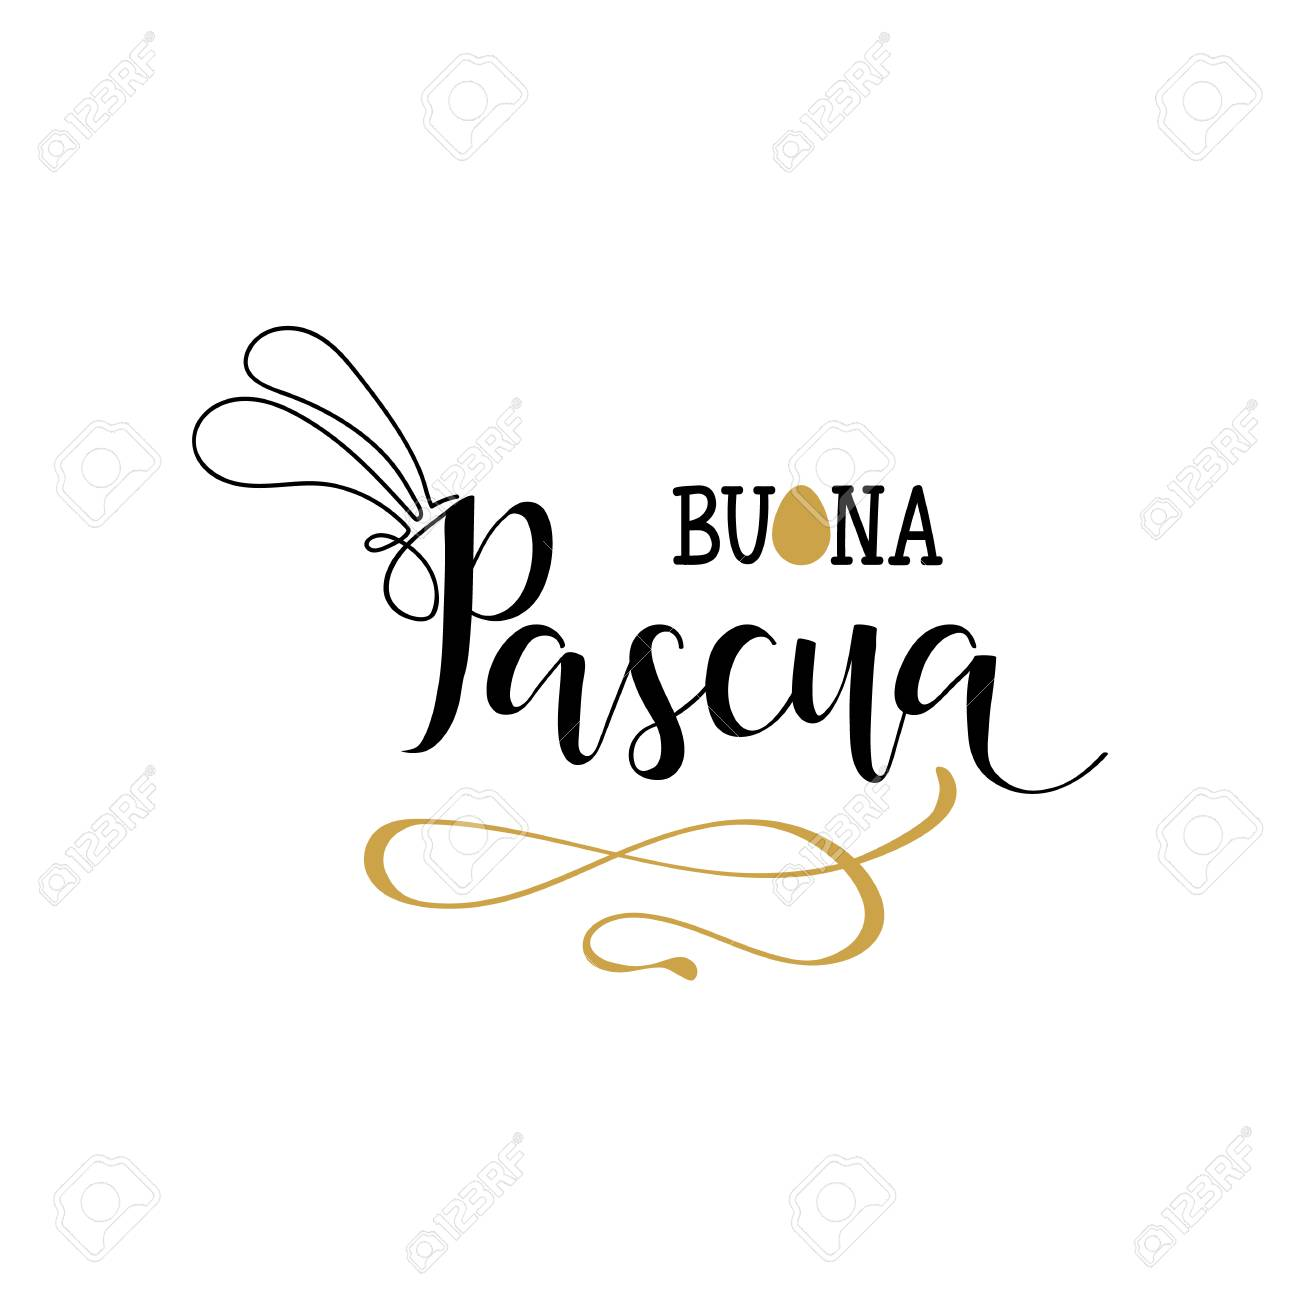 Buona pasqua lettering translation from italian happy easter translation from italian happy easter vector illustration calligraphy on white kristyandbryce Images